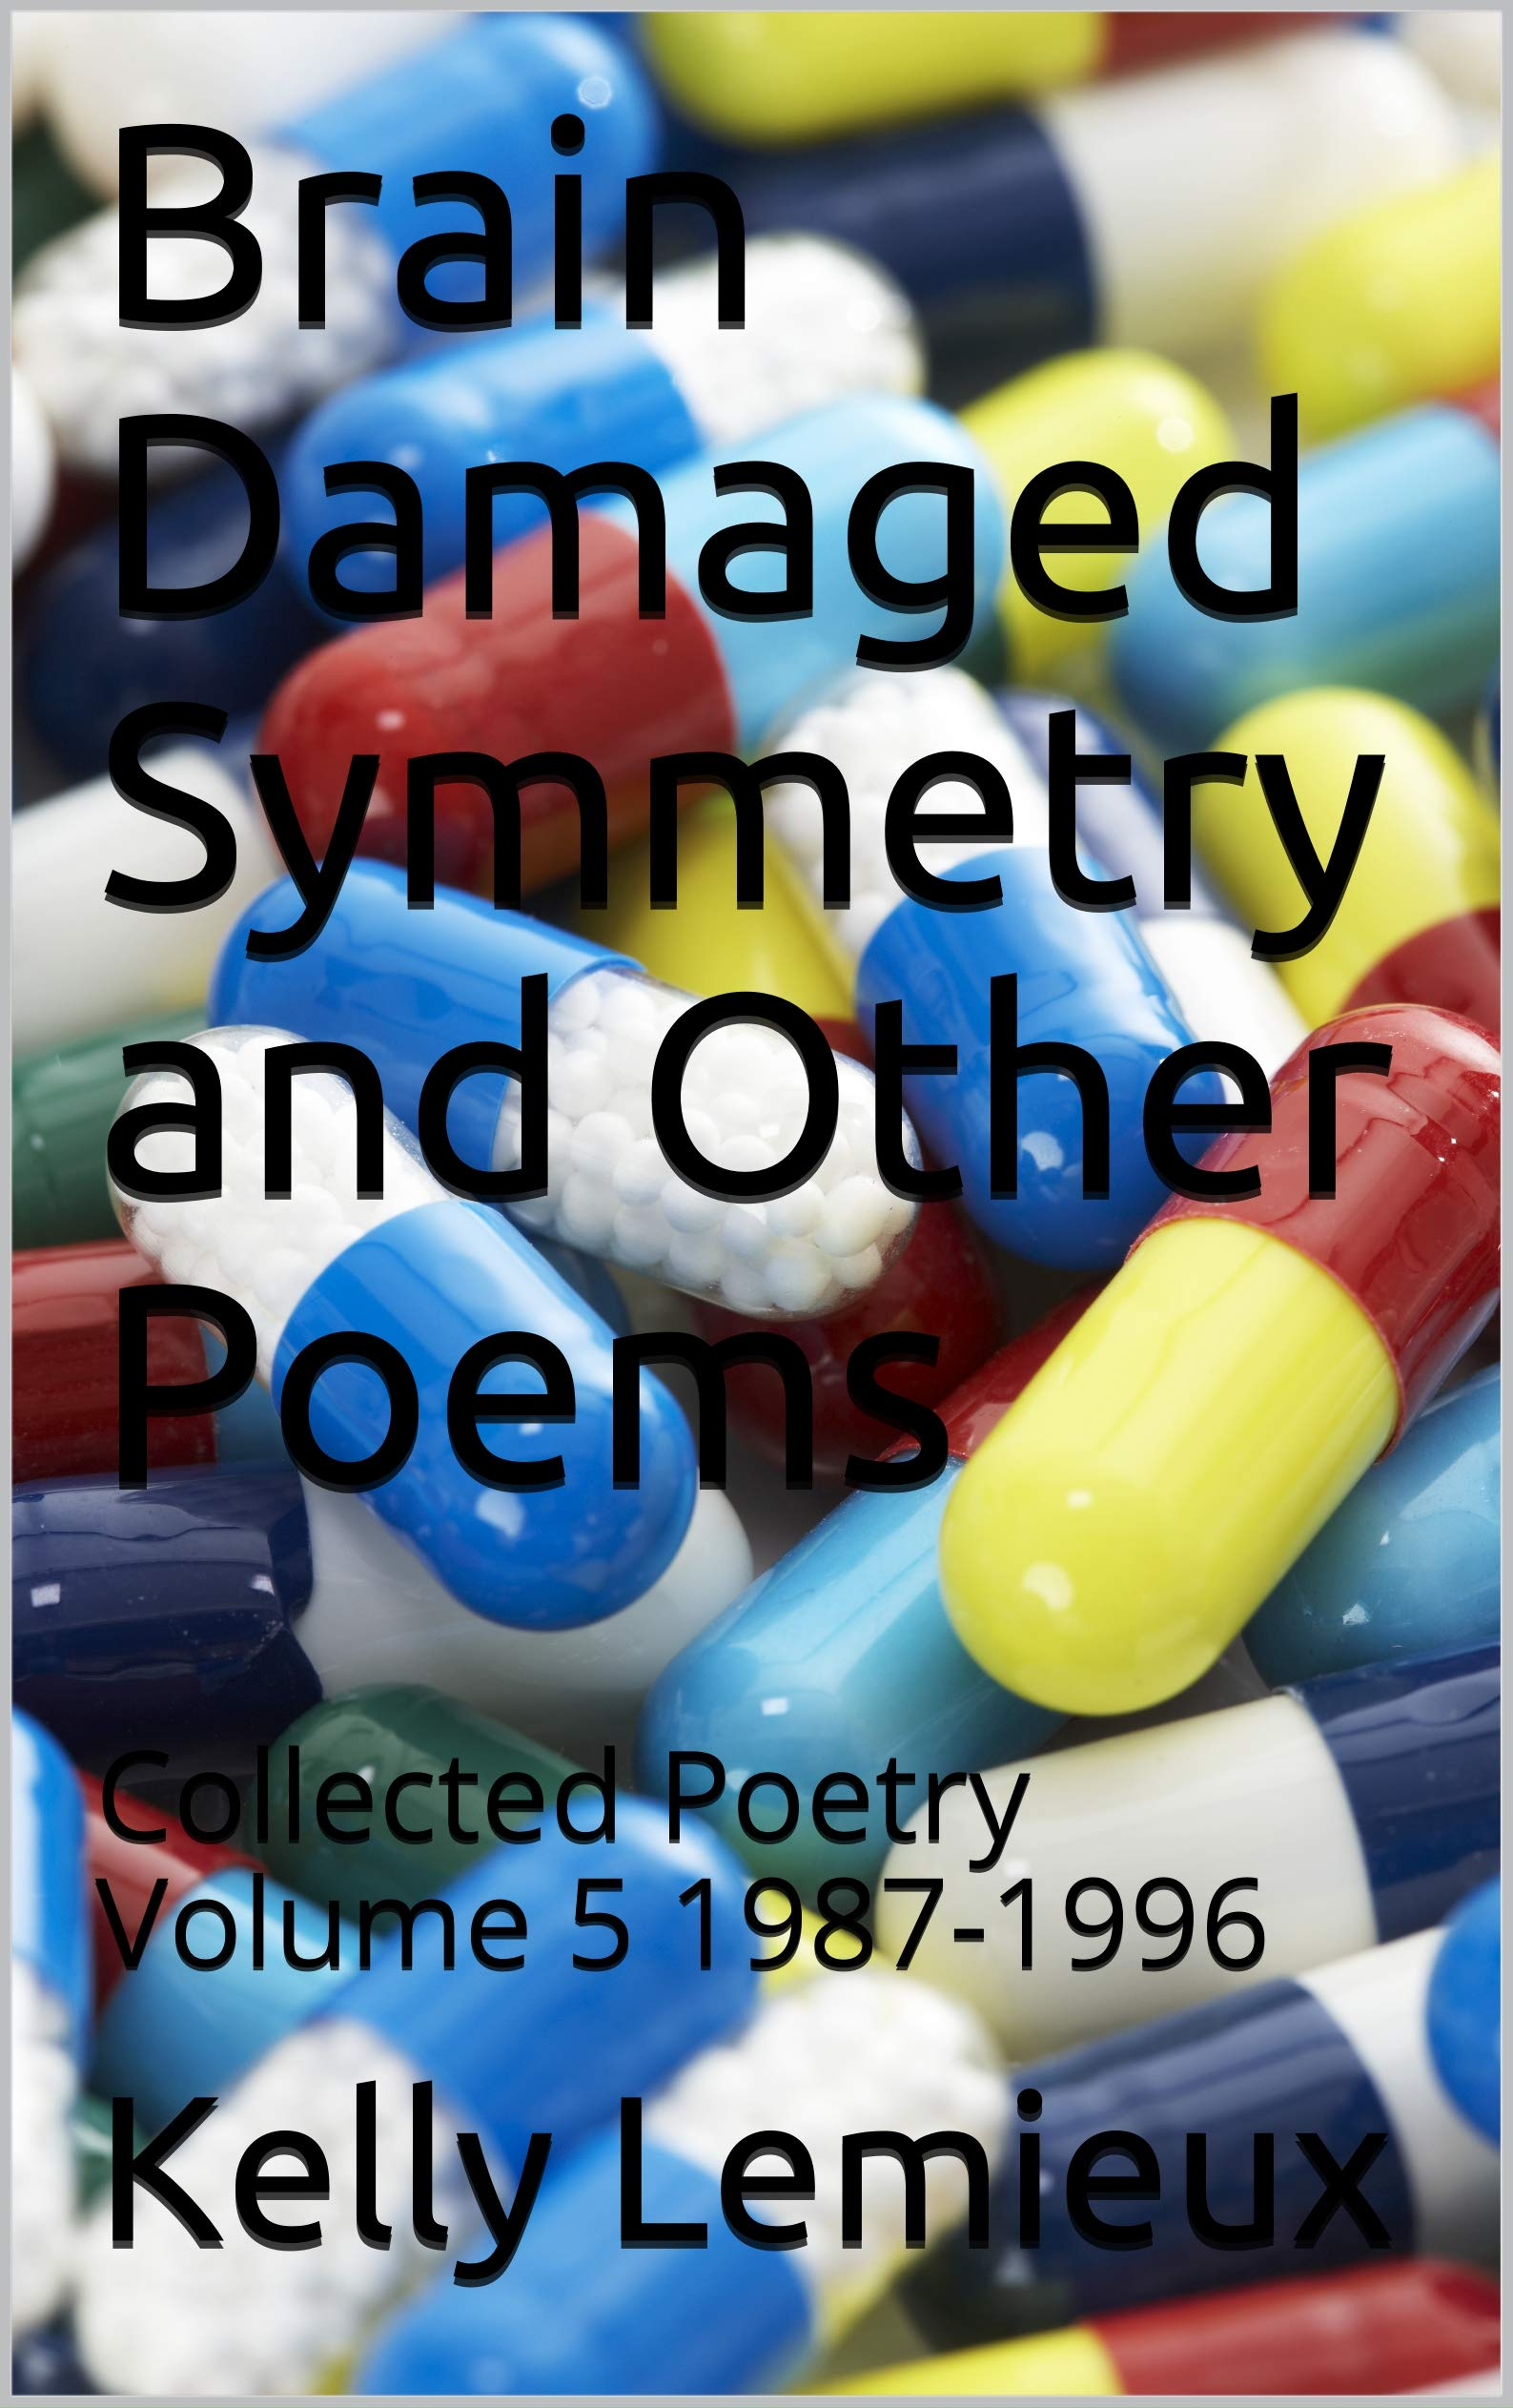 Brain Damaged Symmetry and Other Poems: Collected Poetry Volume 5 1987-1996